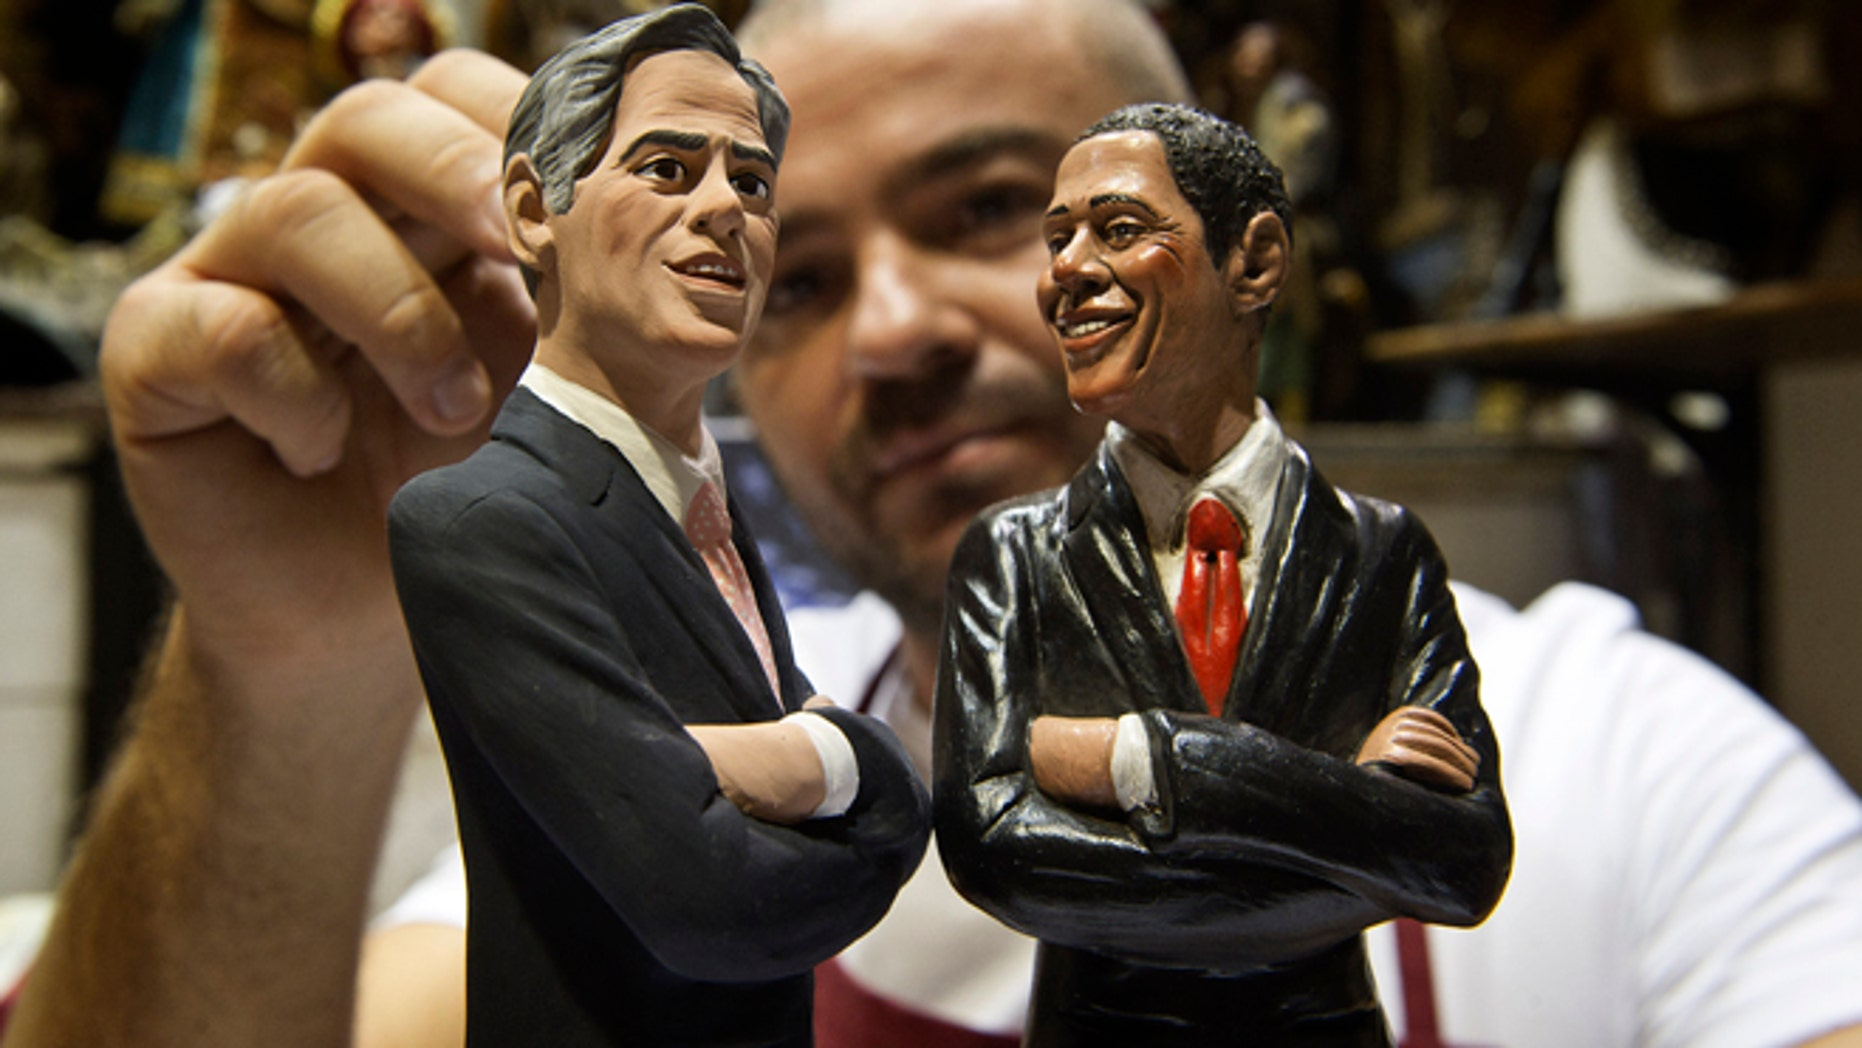 Italian Nativity scenes designer Genny Di Virgilio puts the final touches on two statuettes depicting President Barack Obama, right, and Republican rival Mitt Romney in his shop in Naples, Italy, Monday, Oct. 22, 2012, hours ahead of their third and final presidential debate in Boca Raton, Florida. (AP Photo/Salvatore Laporta)